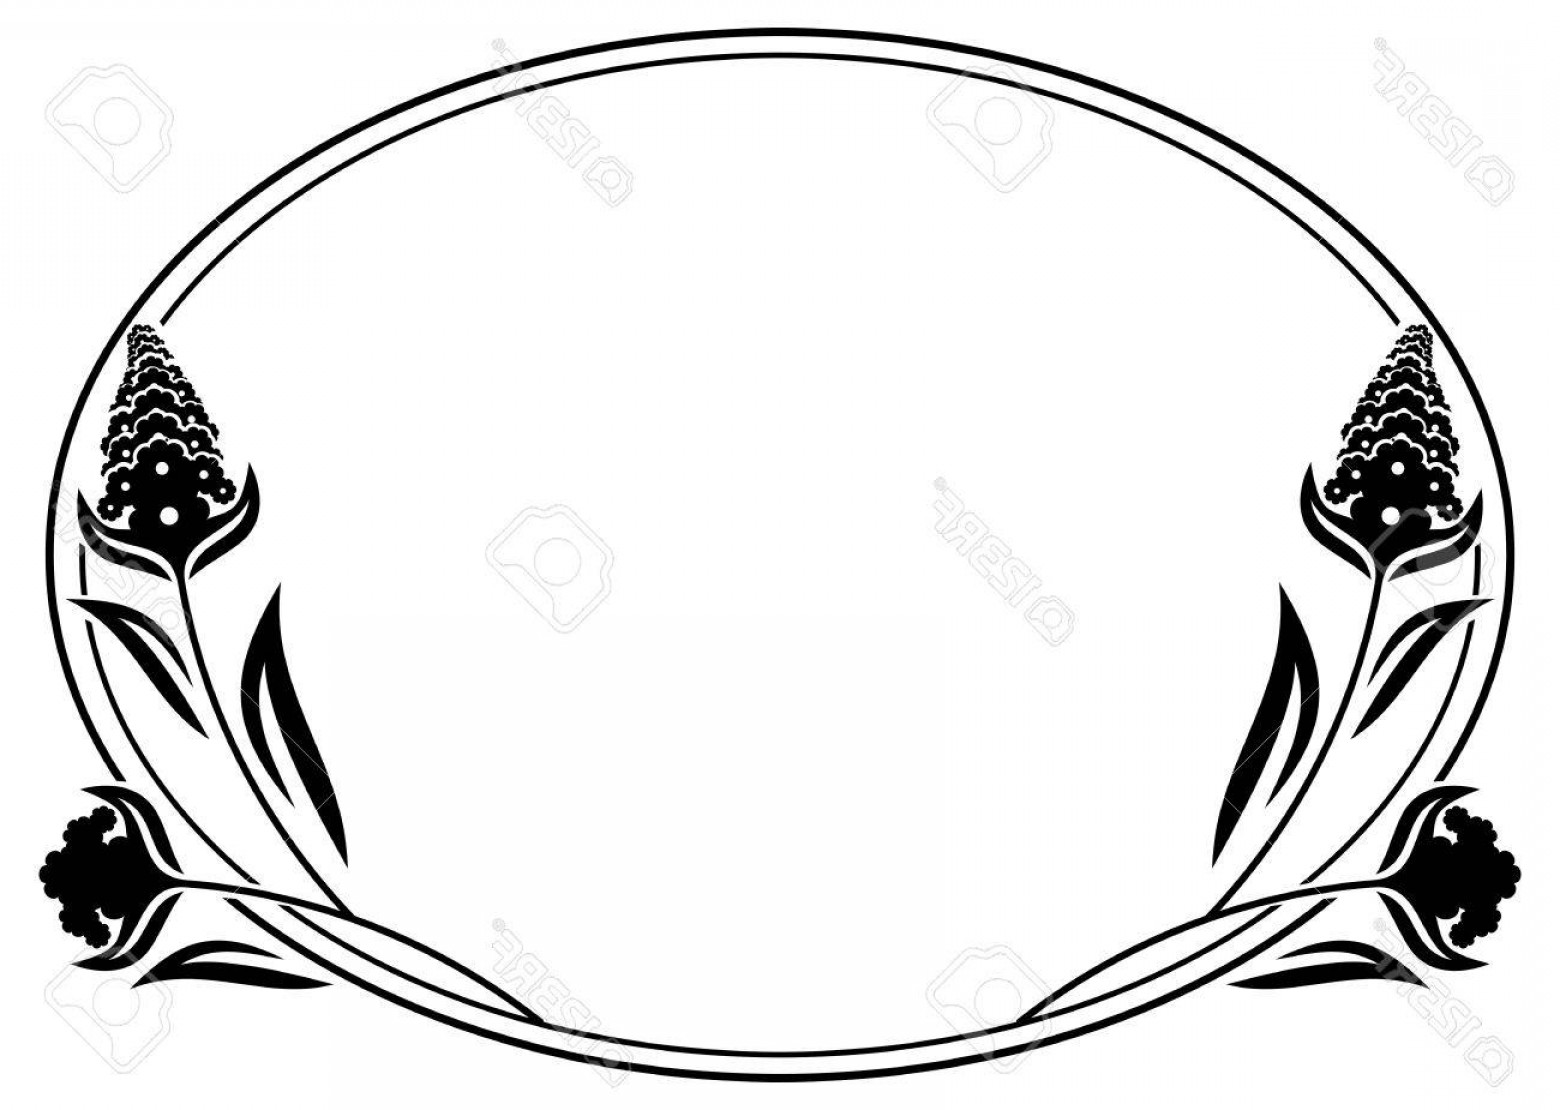 1560x1110 Western Oval Border Vector Black And White Shopatcloth